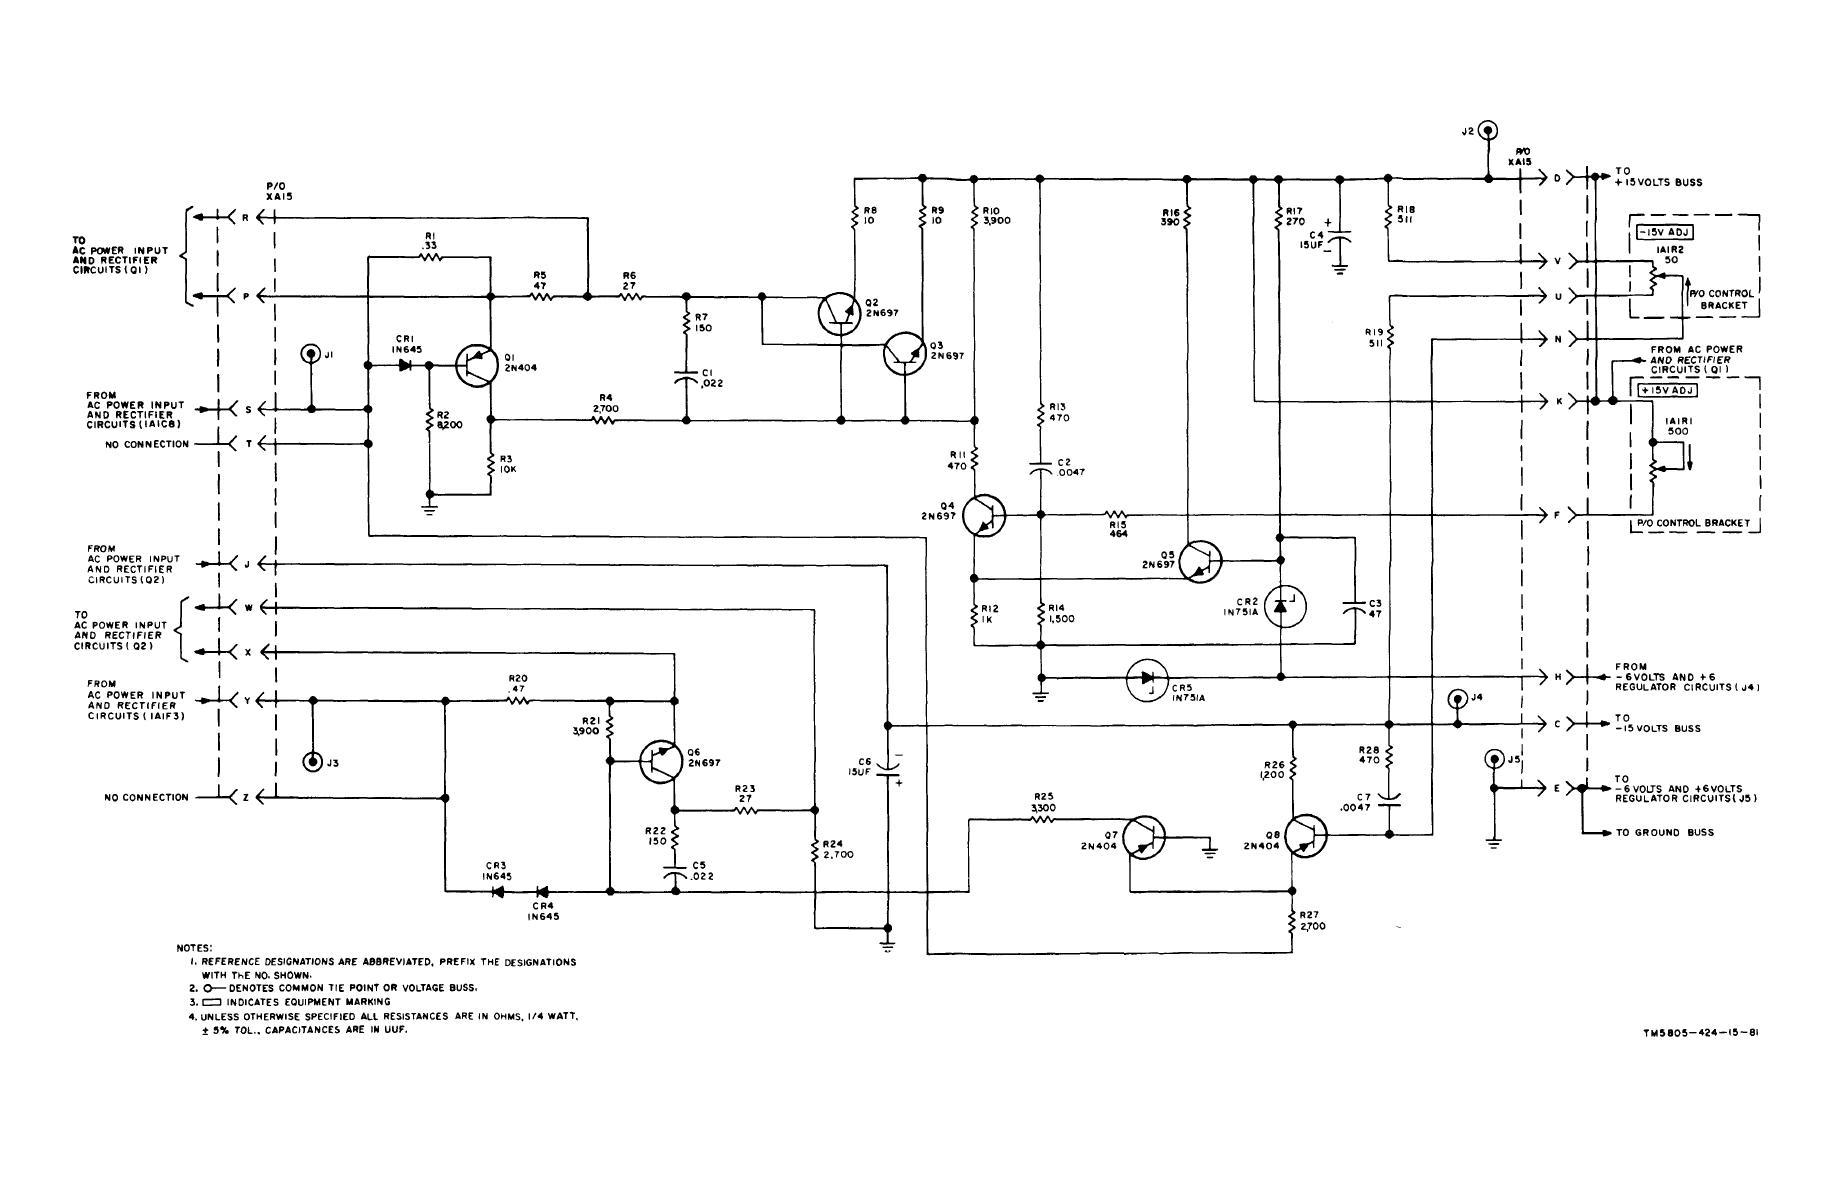 Computer Power Supply Wiring Diagram Nilzanet – Computer Power Supply Wiring Diagram